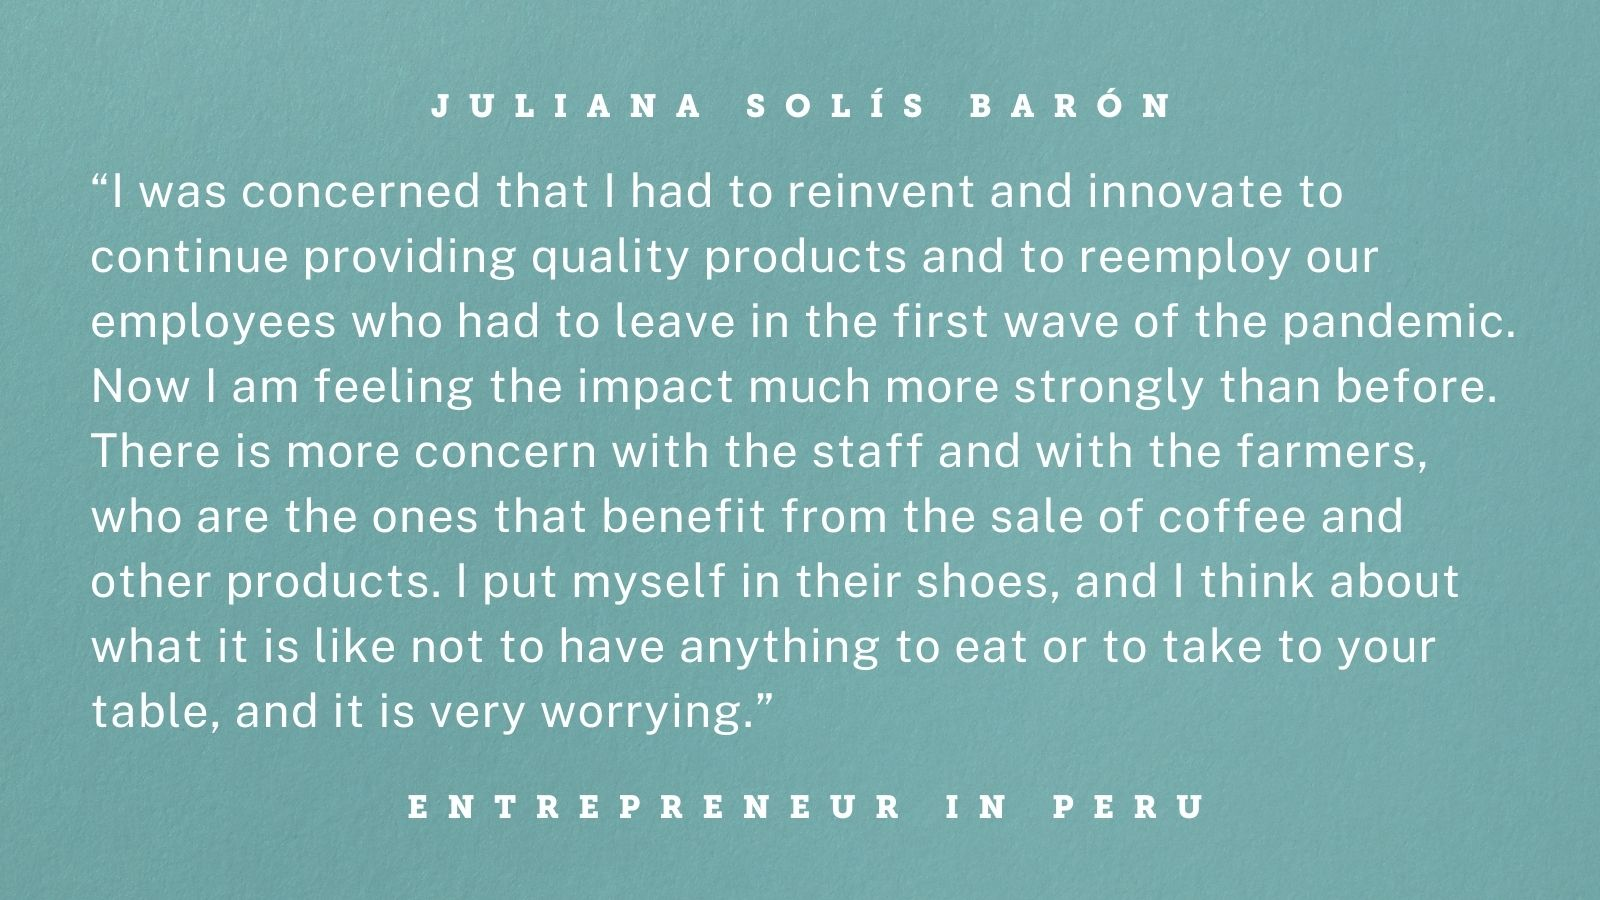 "Quote from an entrepreneur in Peru. Graphic reads: ""I was concerned that I had to reinvent and innovate to continue providing quality products and to reemploy our employees who had to leave in the first wave of the pandemic. Now I am feeling the impact much more strongly than before. There is more concern with the staff and with the farmers, who are the ones that benefit from the sale of coffee and other products. I put myself in their shoes, and I think about what it is like not to have anything to eat or to take to your table, and it is very worrying."""